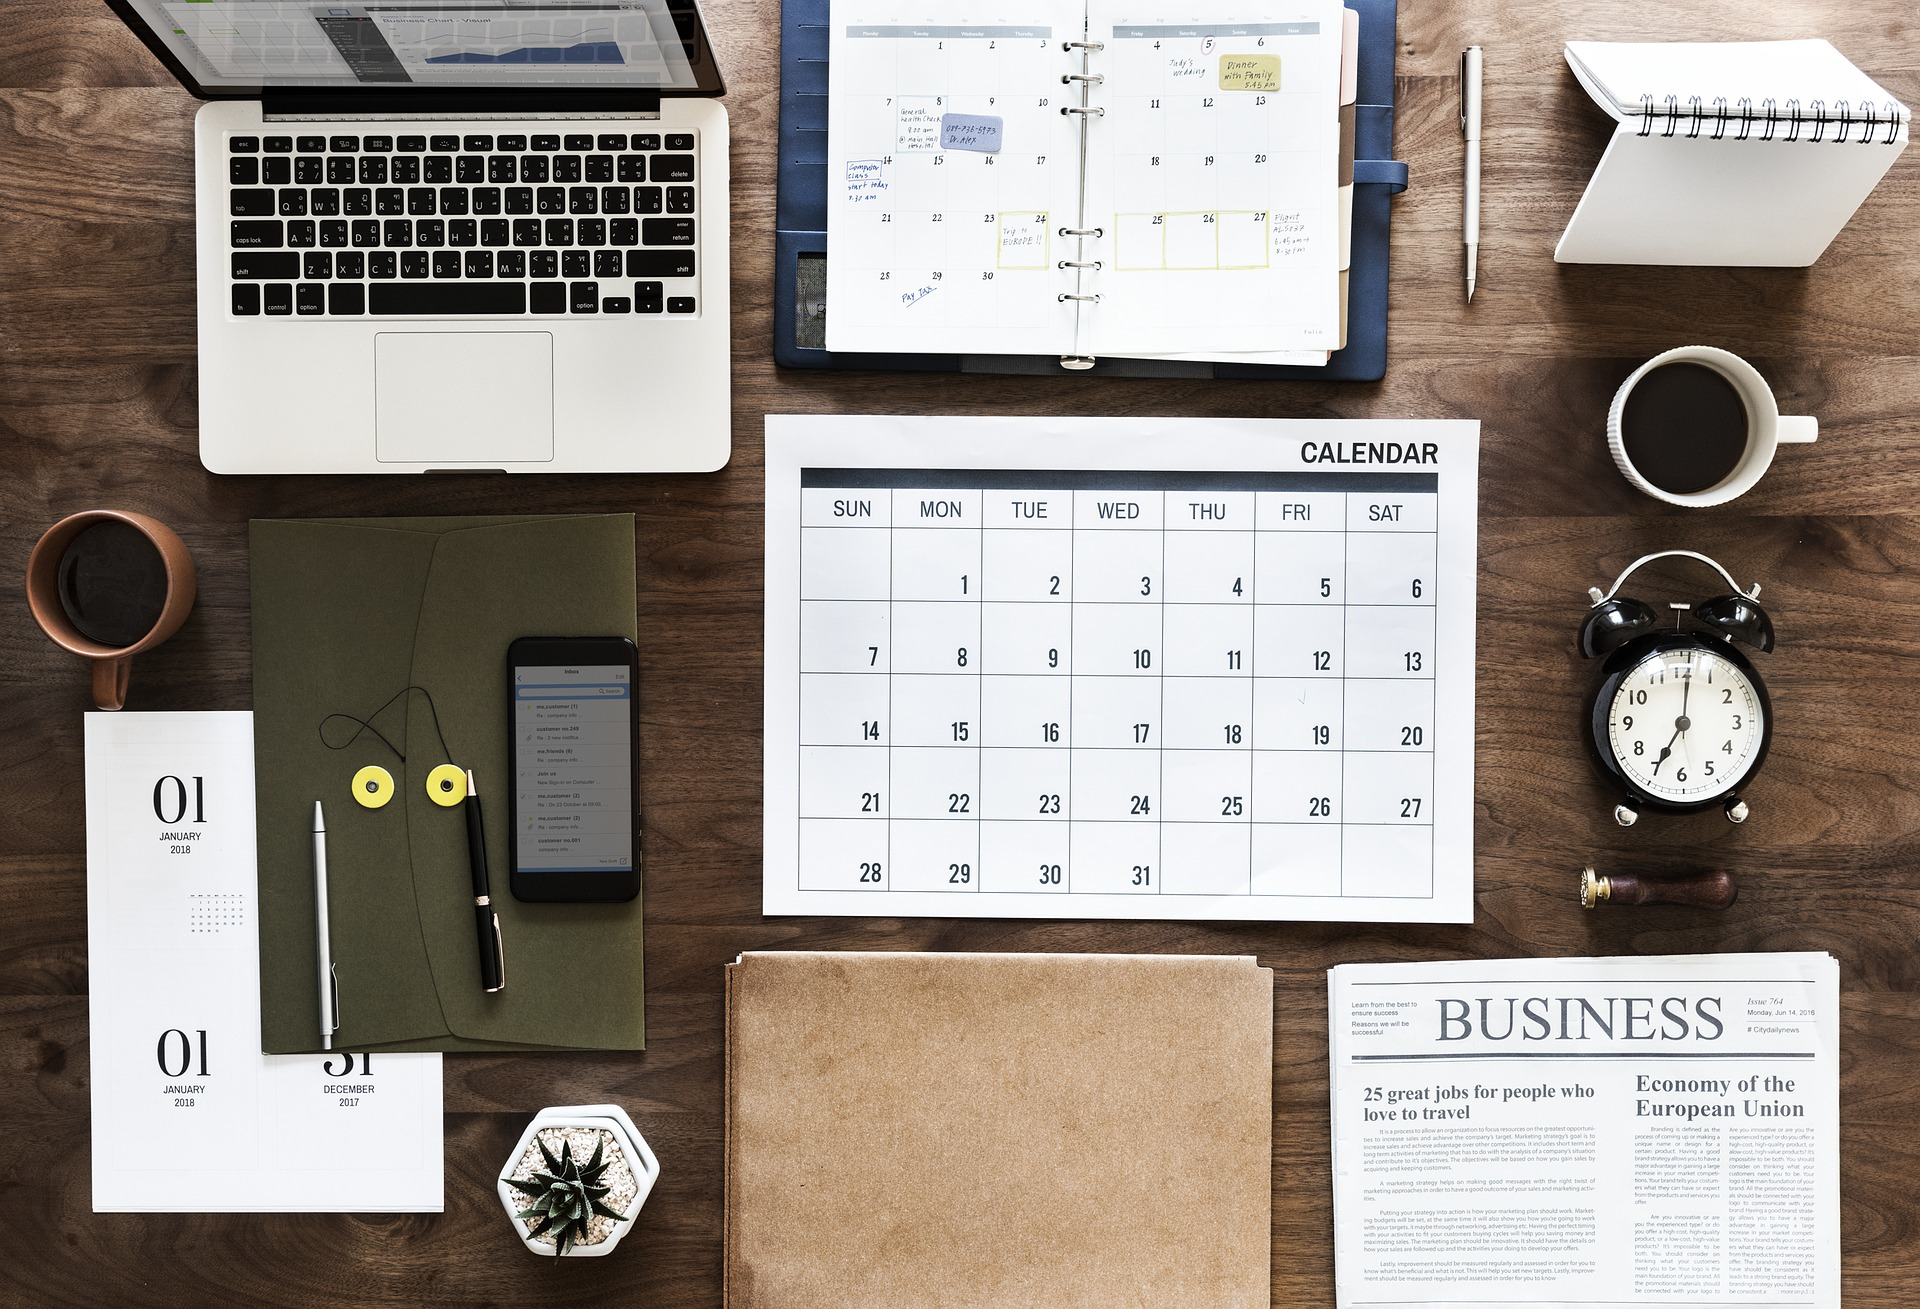 Organizing tips for business